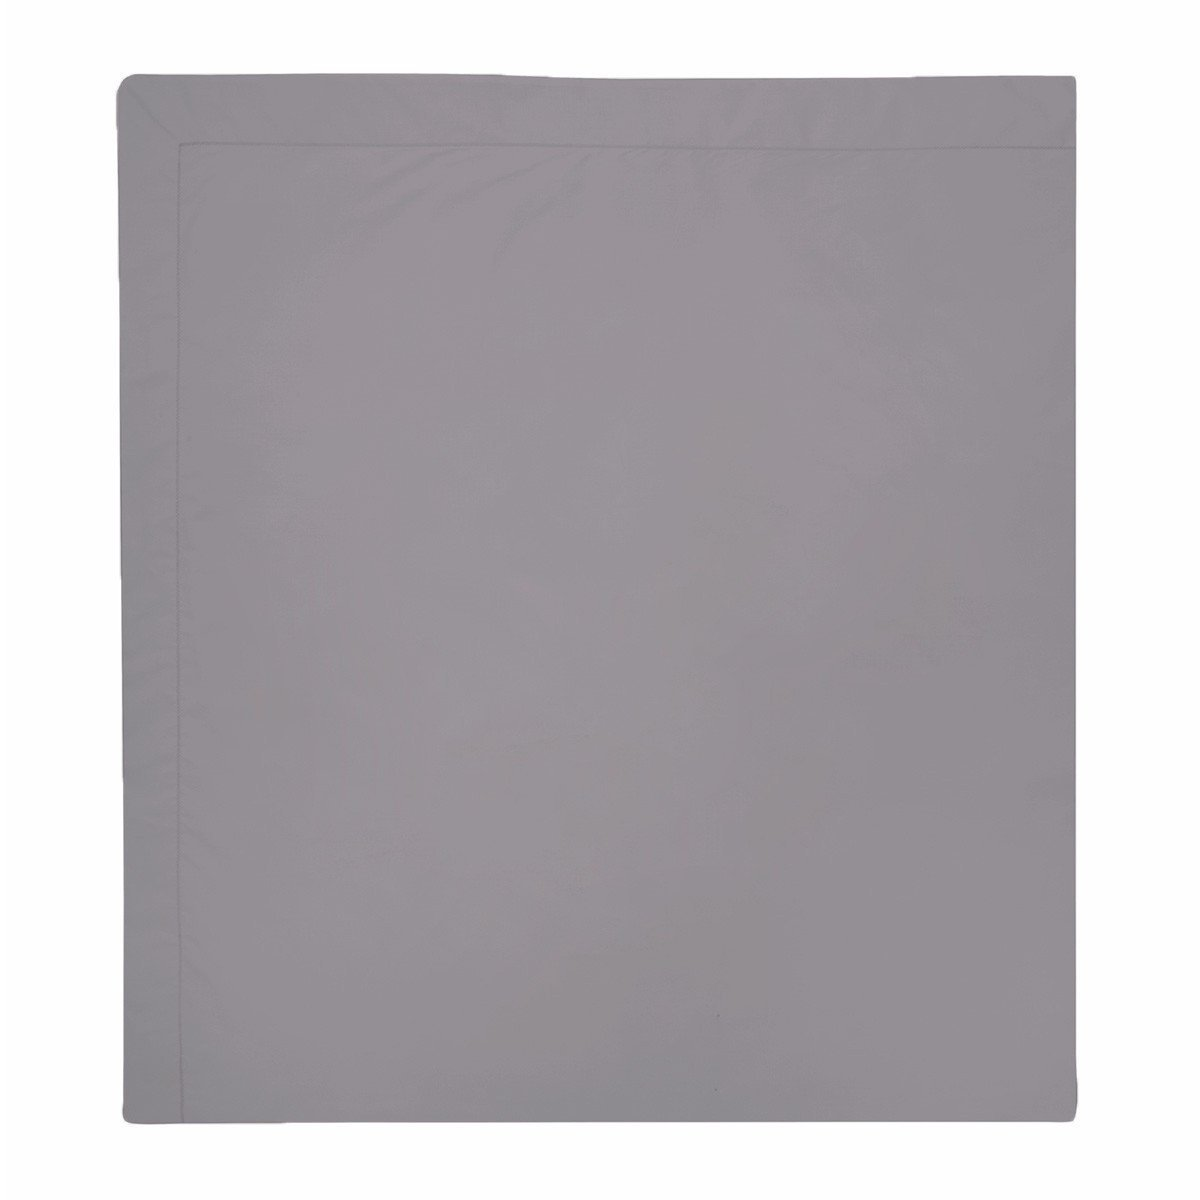 Roma Platine Gray Bedding Collection by Yves Delorme | Fig Linens - Gray bed linen, duvet cover